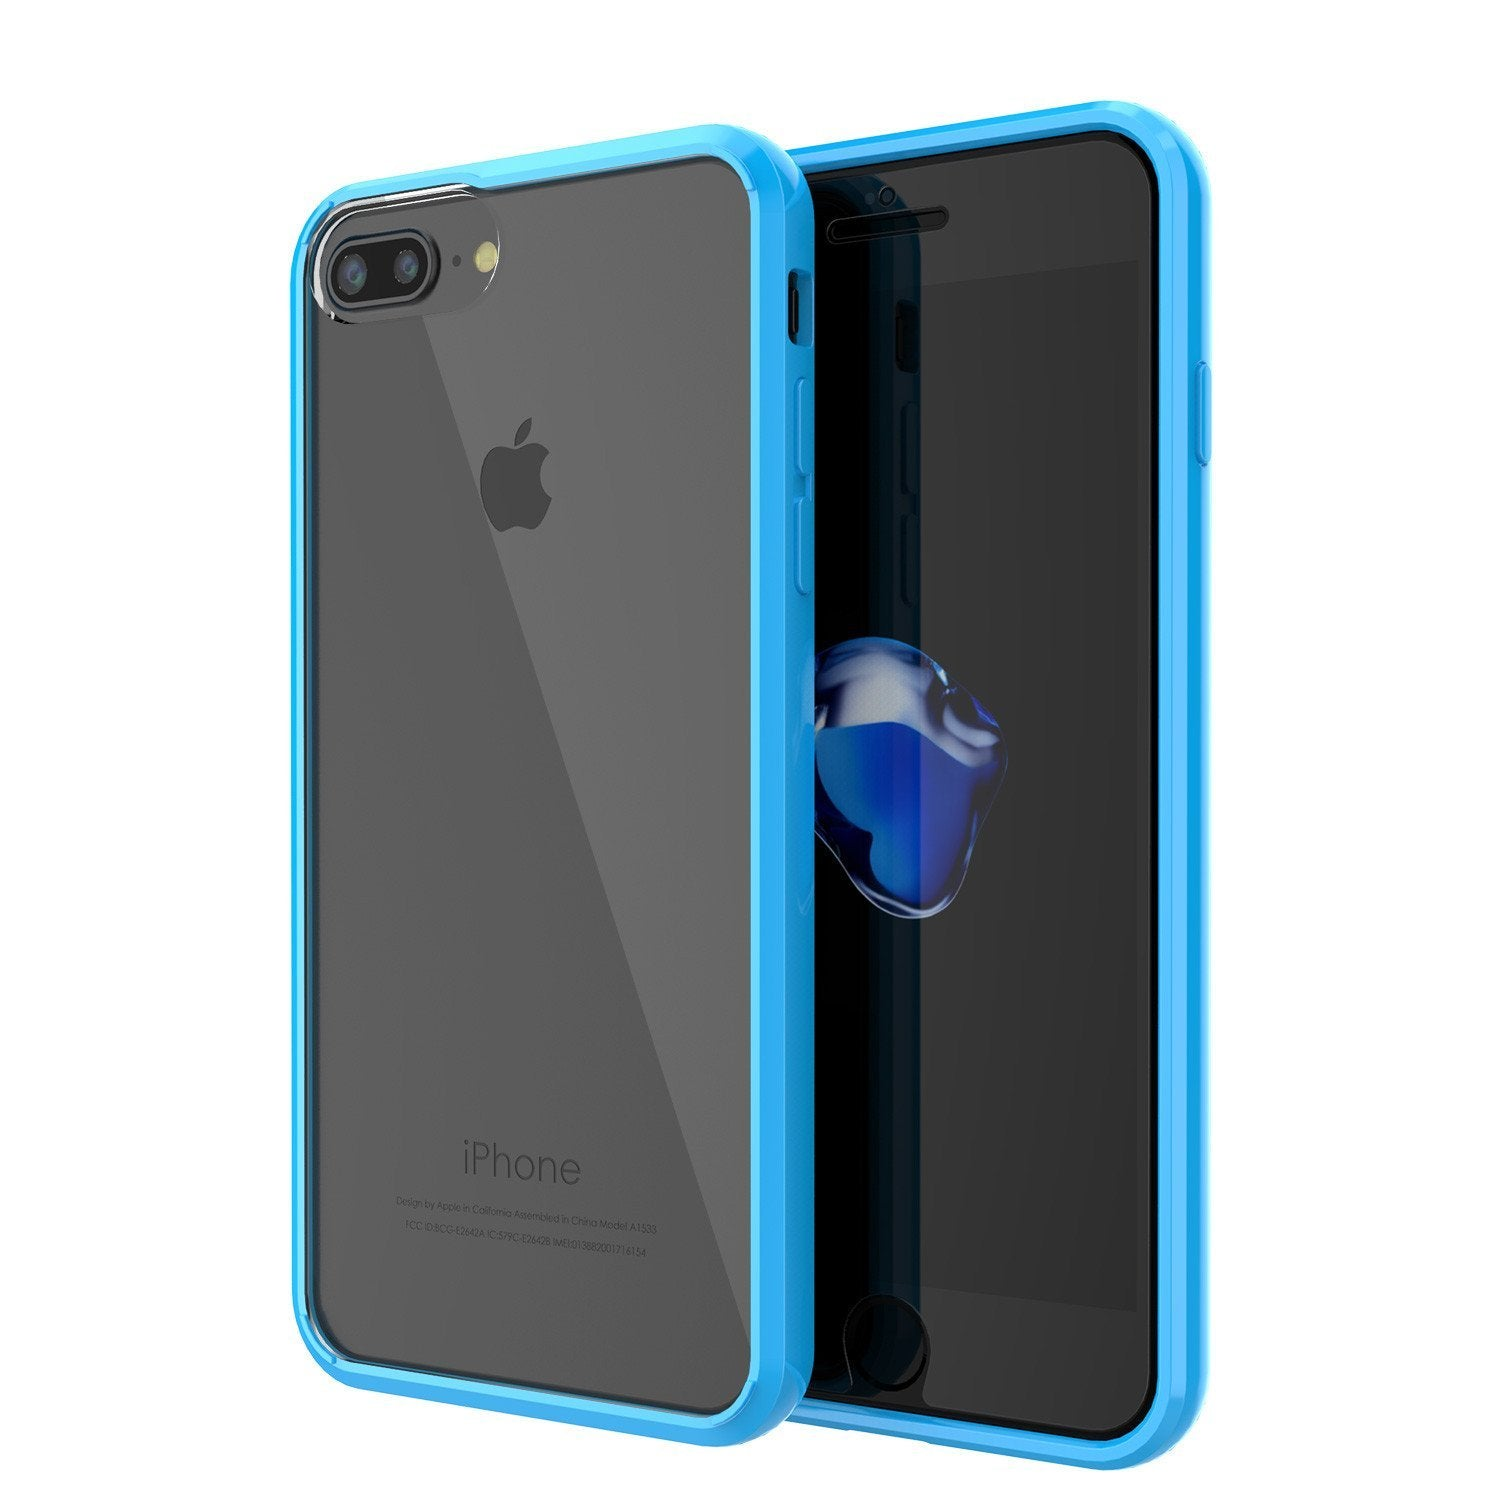 iPhone 8 Case Punkcase® LUCID 2.0 Light Blue Series w/ PUNK SHIELD Screen Protector | Ultra Fit - PunkCase NZ